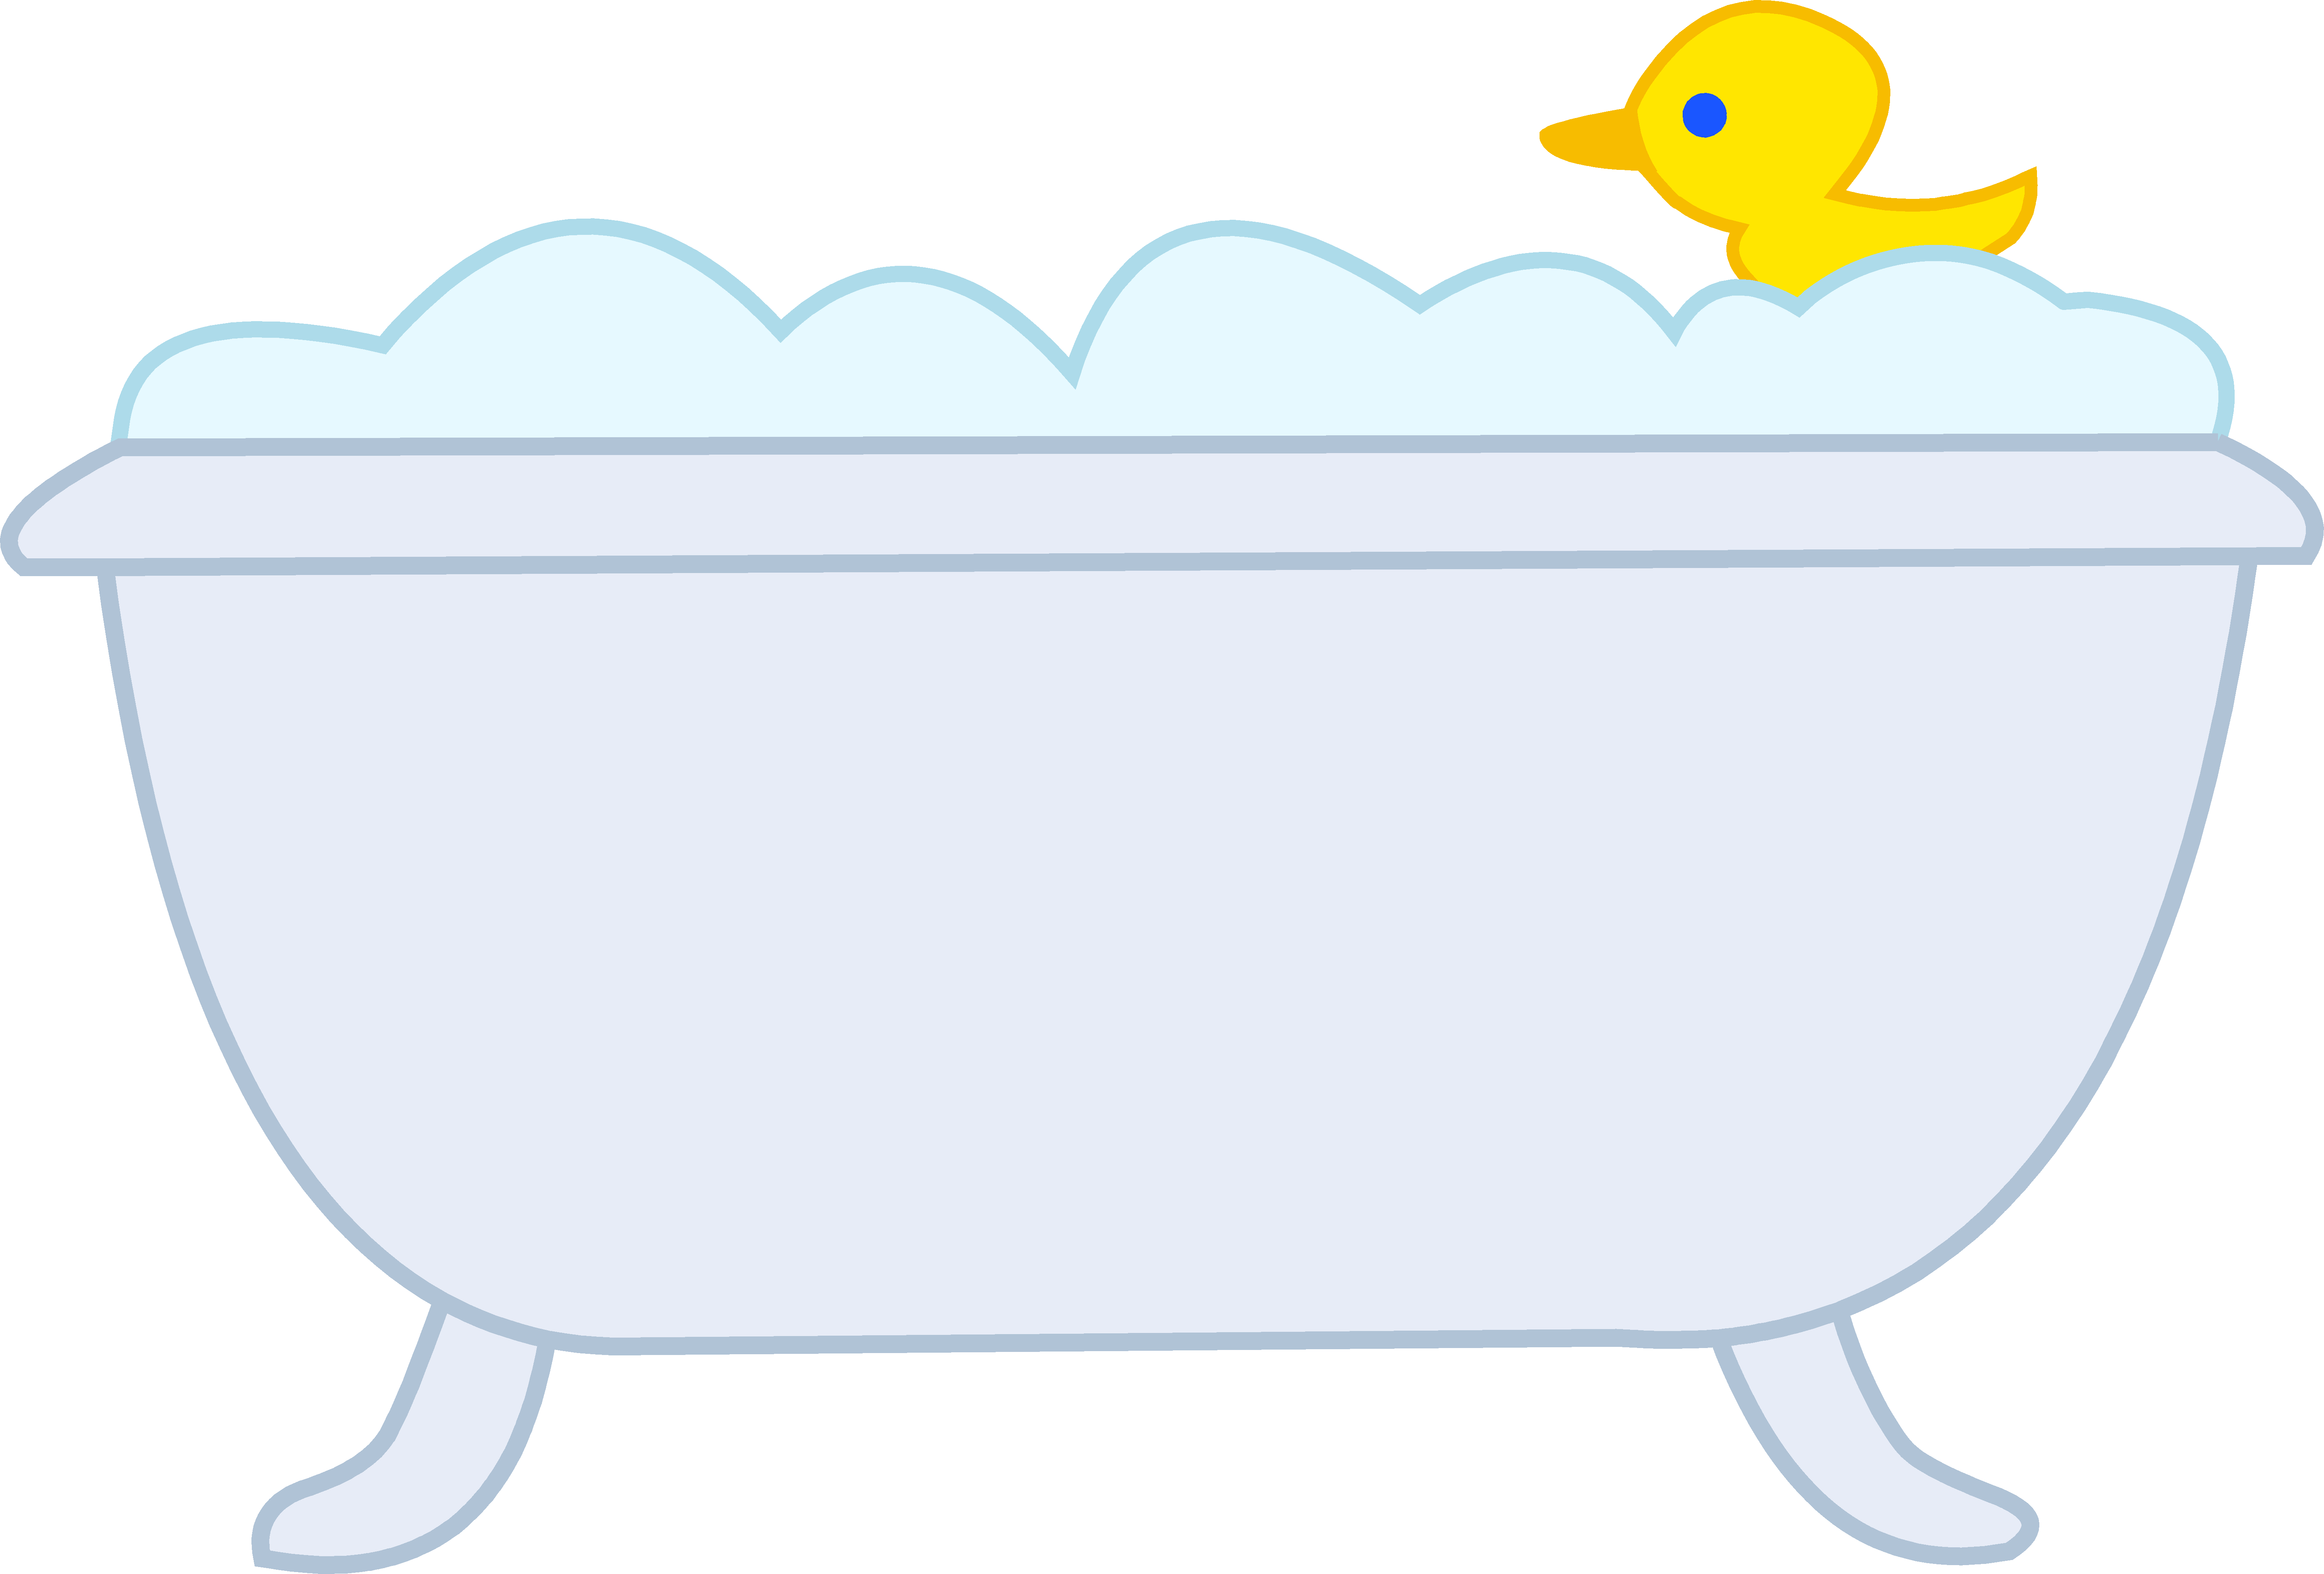 Old fashioned bathtub ideas. Exercising clipart simple